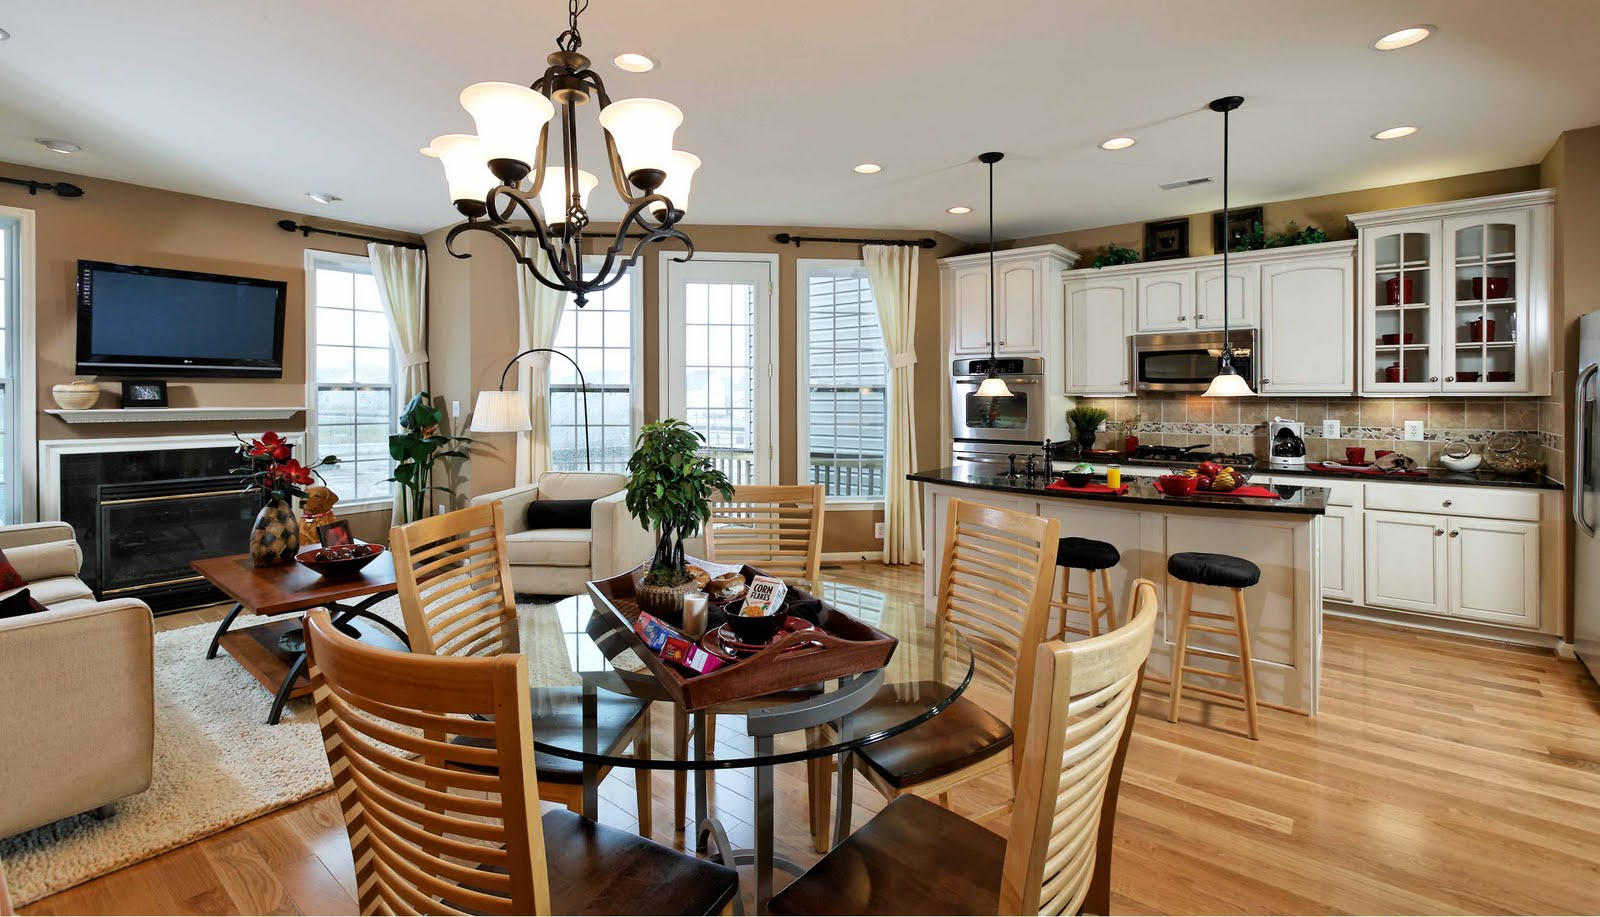 County Brambleton An Award Winning Planned Community In Southeastern Loudoun That Is Now Home To More Than 2 000 Residents Welcomes Van Metre Homes